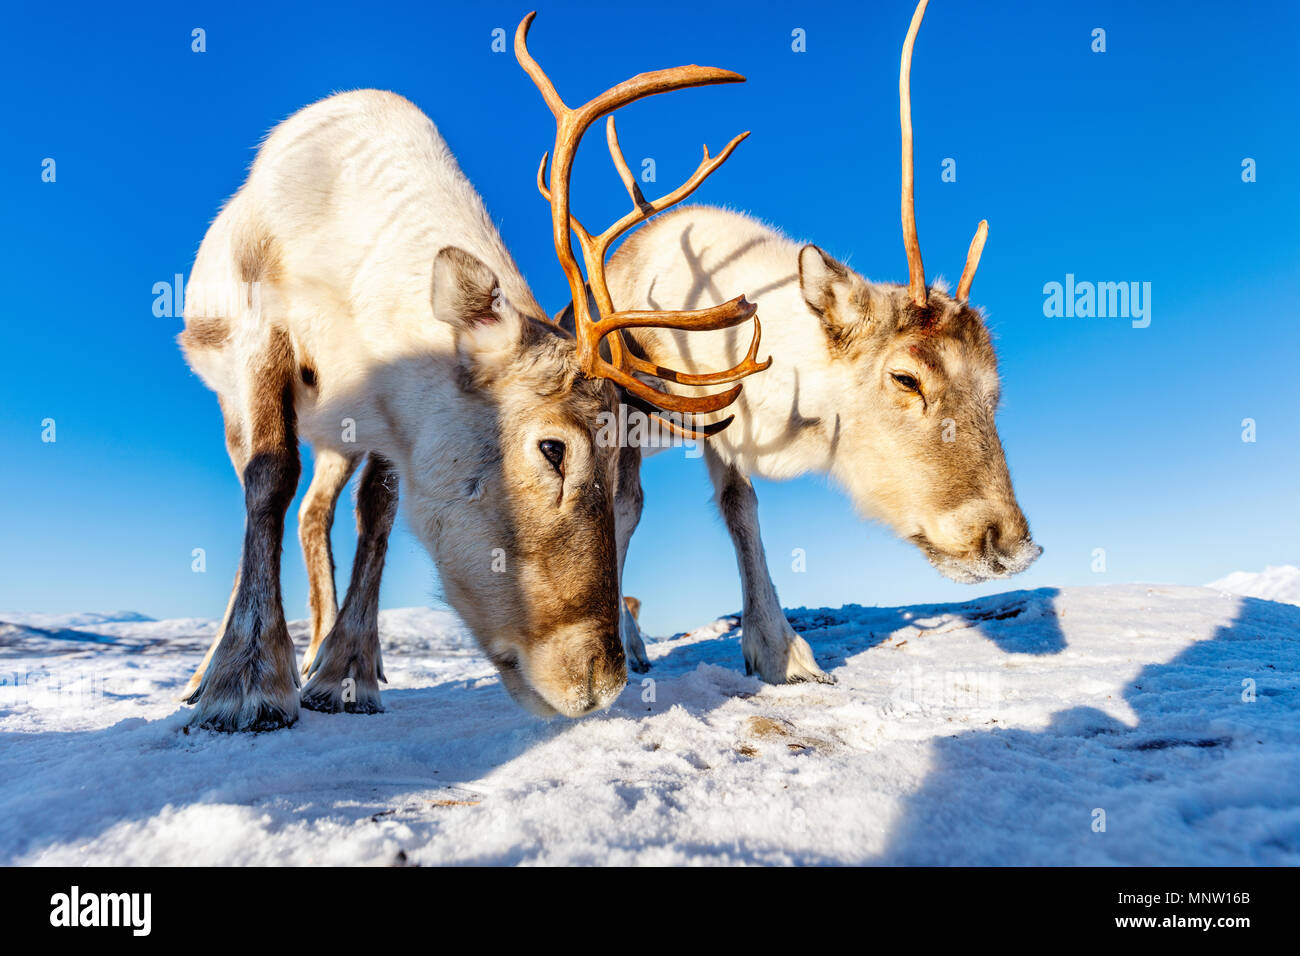 Reindeer in Northern Norway on sunny winter day - Stock Image